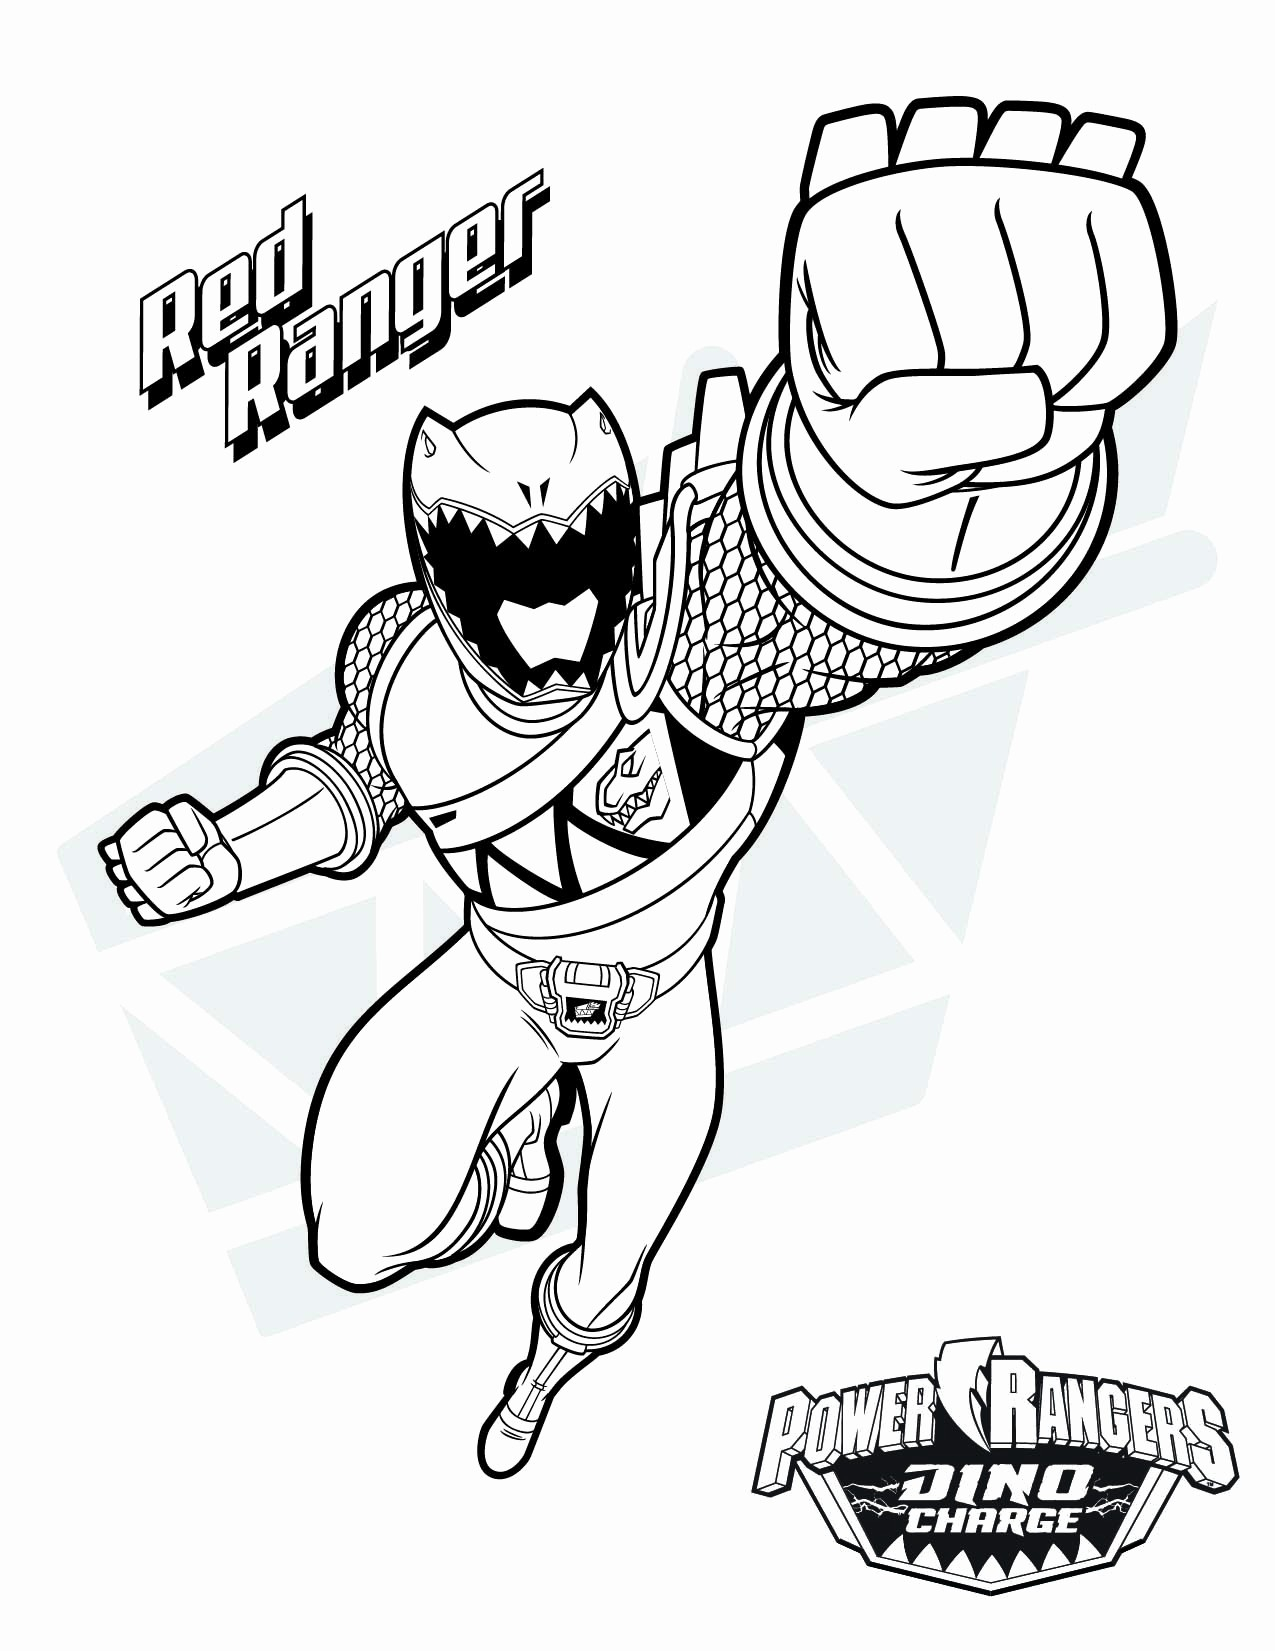 red ranger coloring free printable for kids books fresh mighty morphin rangers dxj1t coloring pages Green Power Ranger Coloring Page